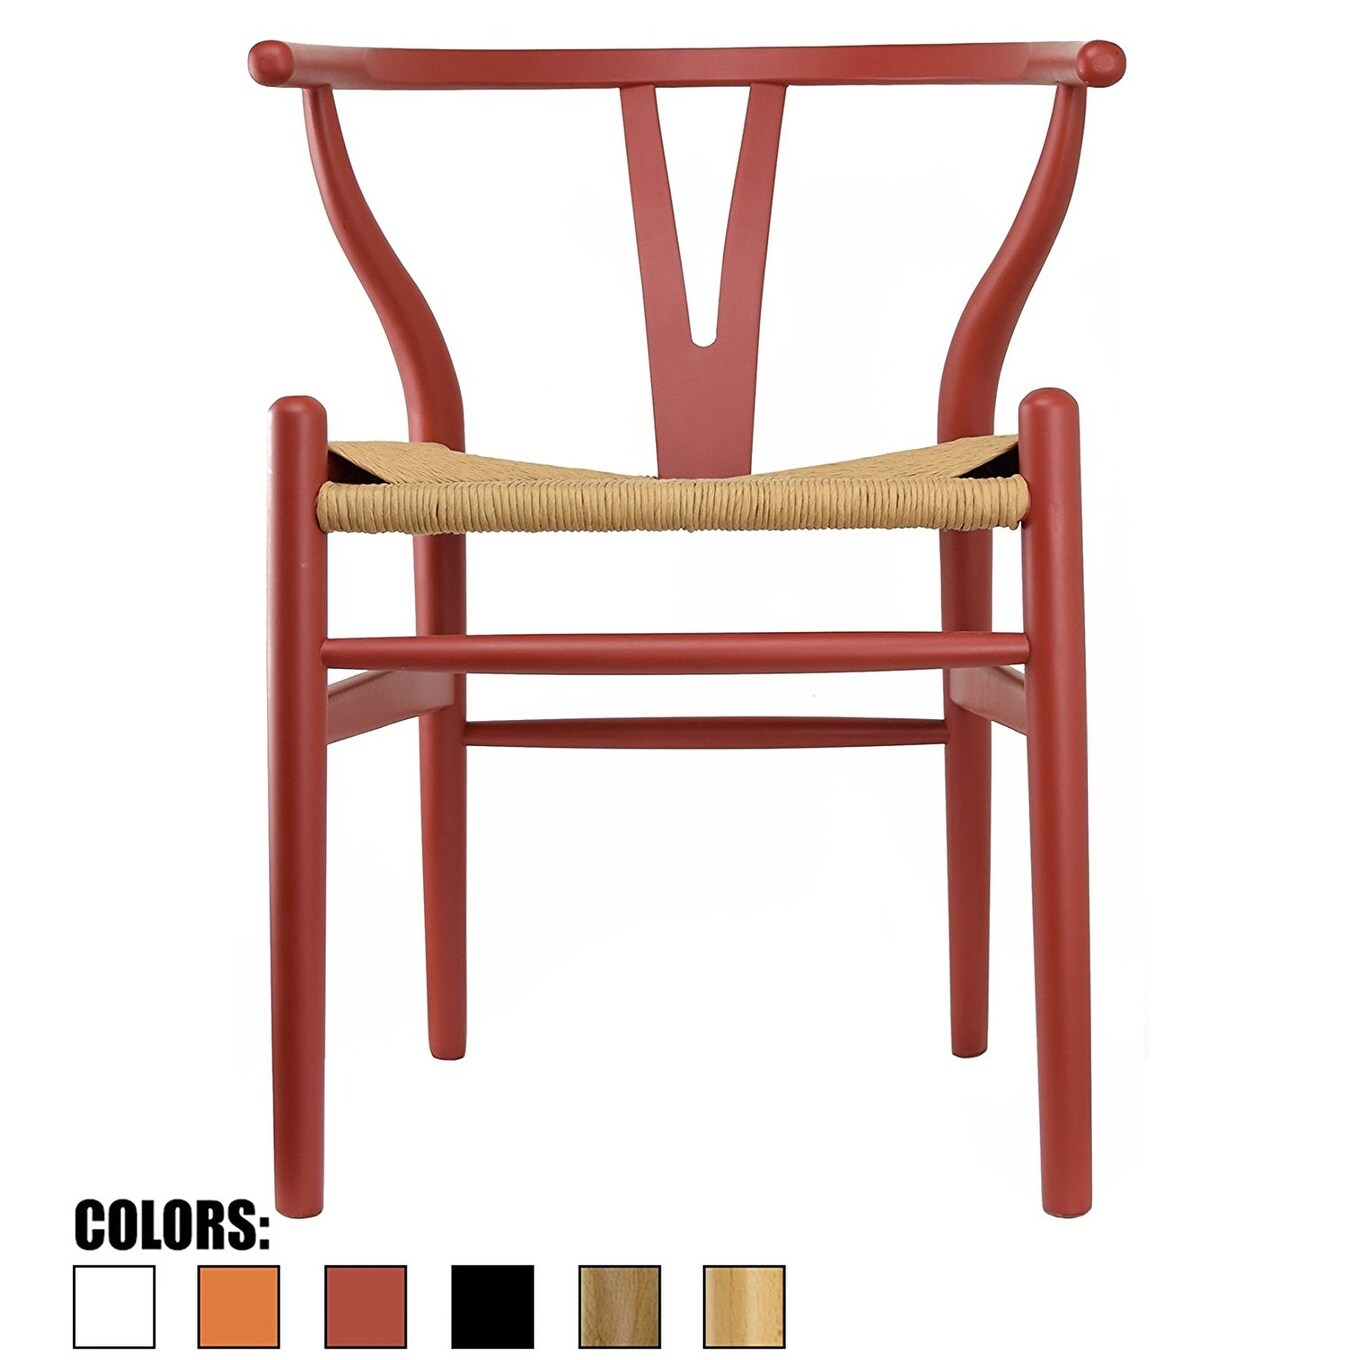 2xhome Red Modern Wood Elbow Chair Open Y Back Contemporary For Kitchen Dining Room With Woven Seat On Sale Overstock 13957683